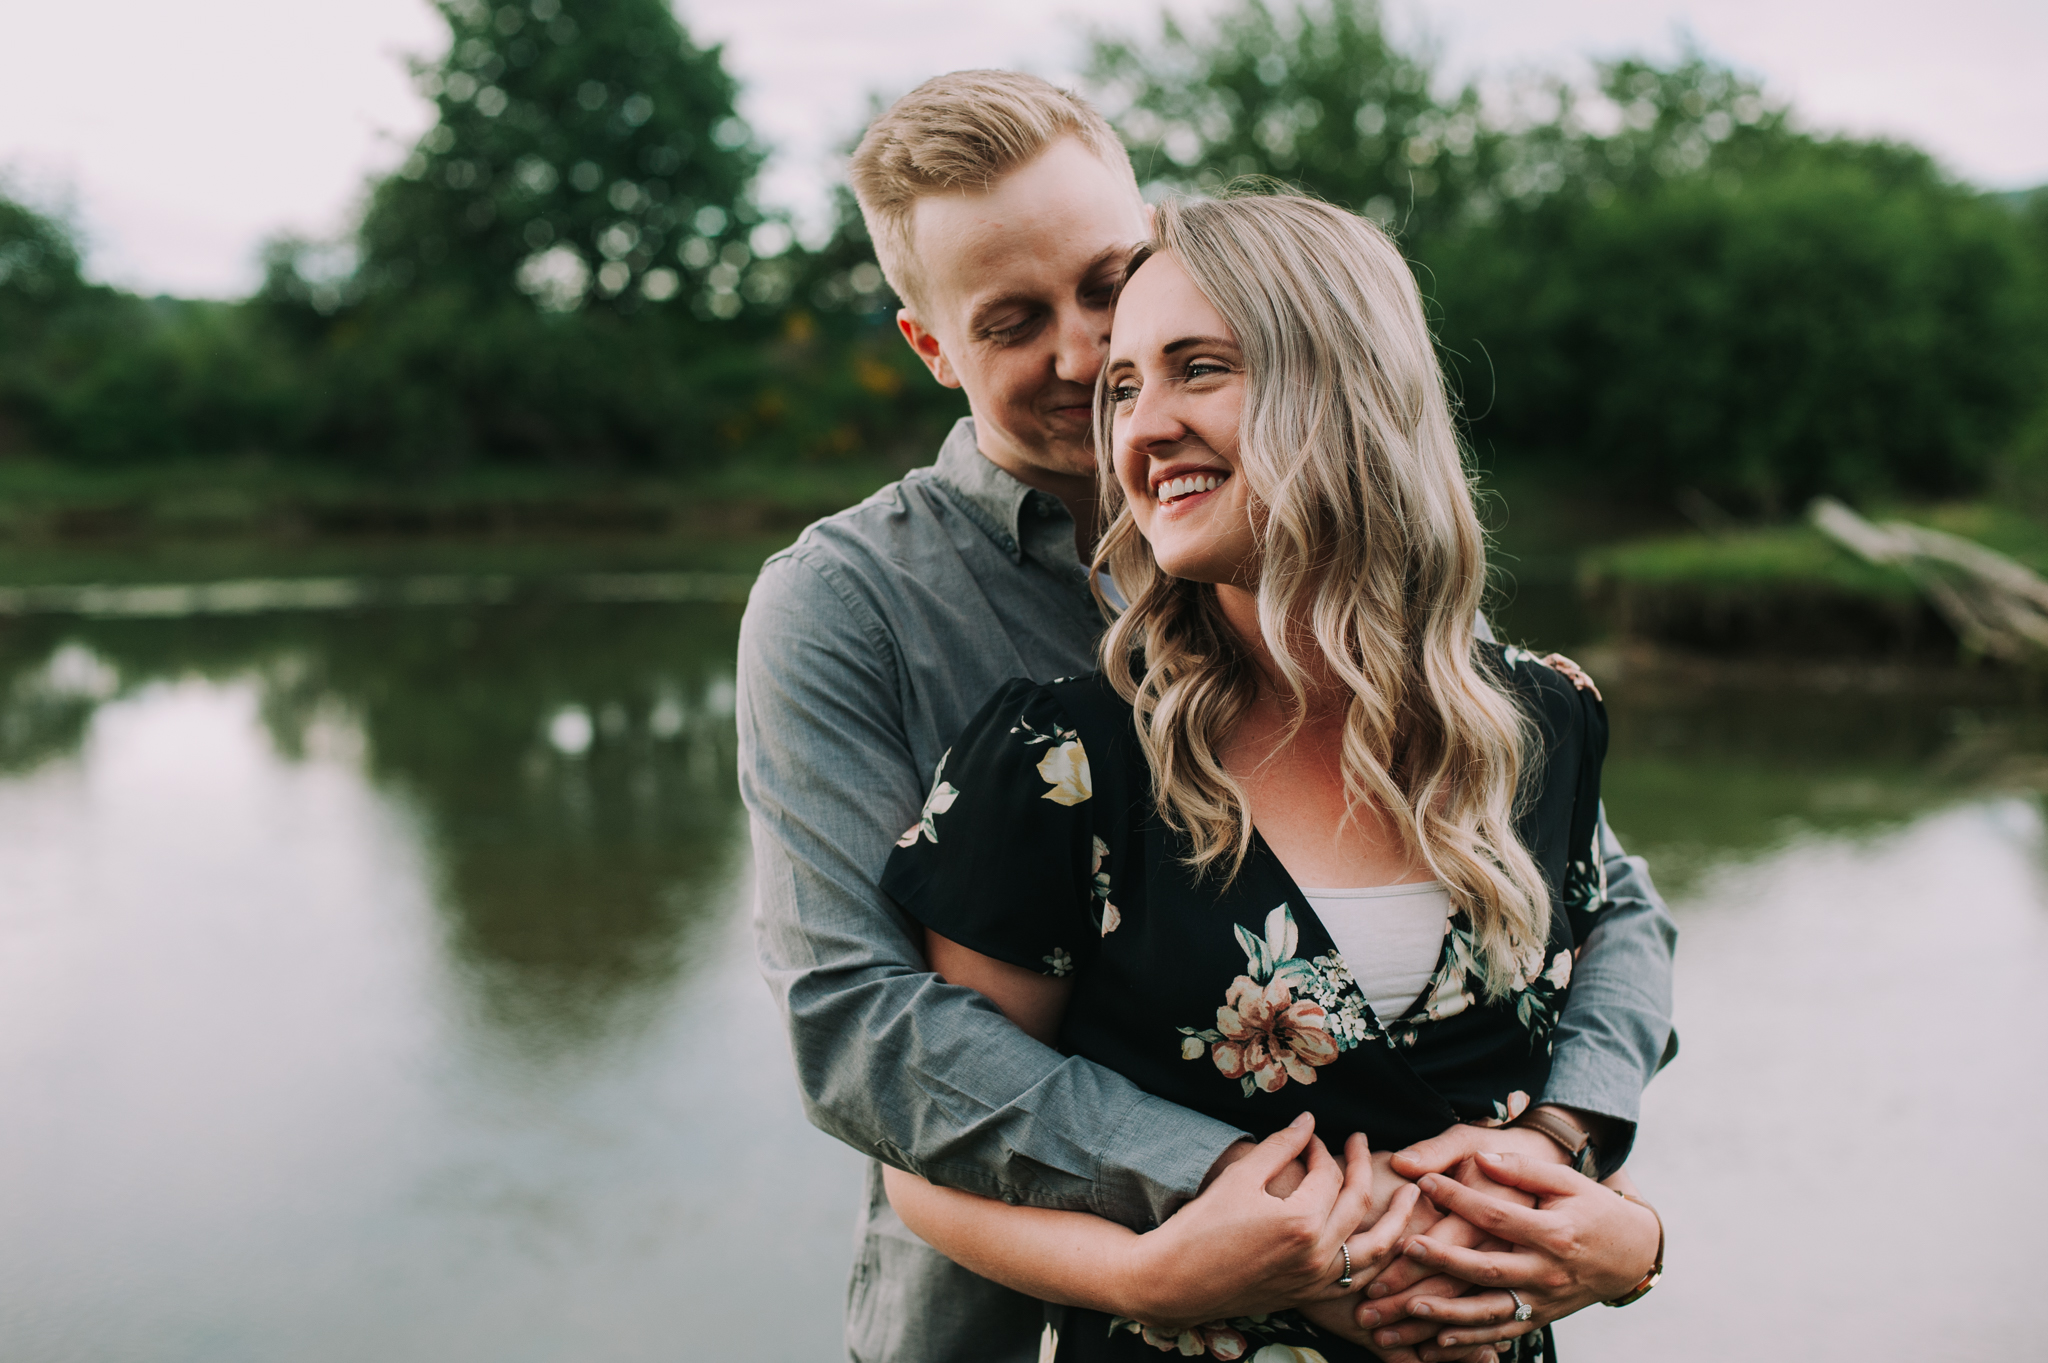 Leah+Rylan May2019_1.jpg